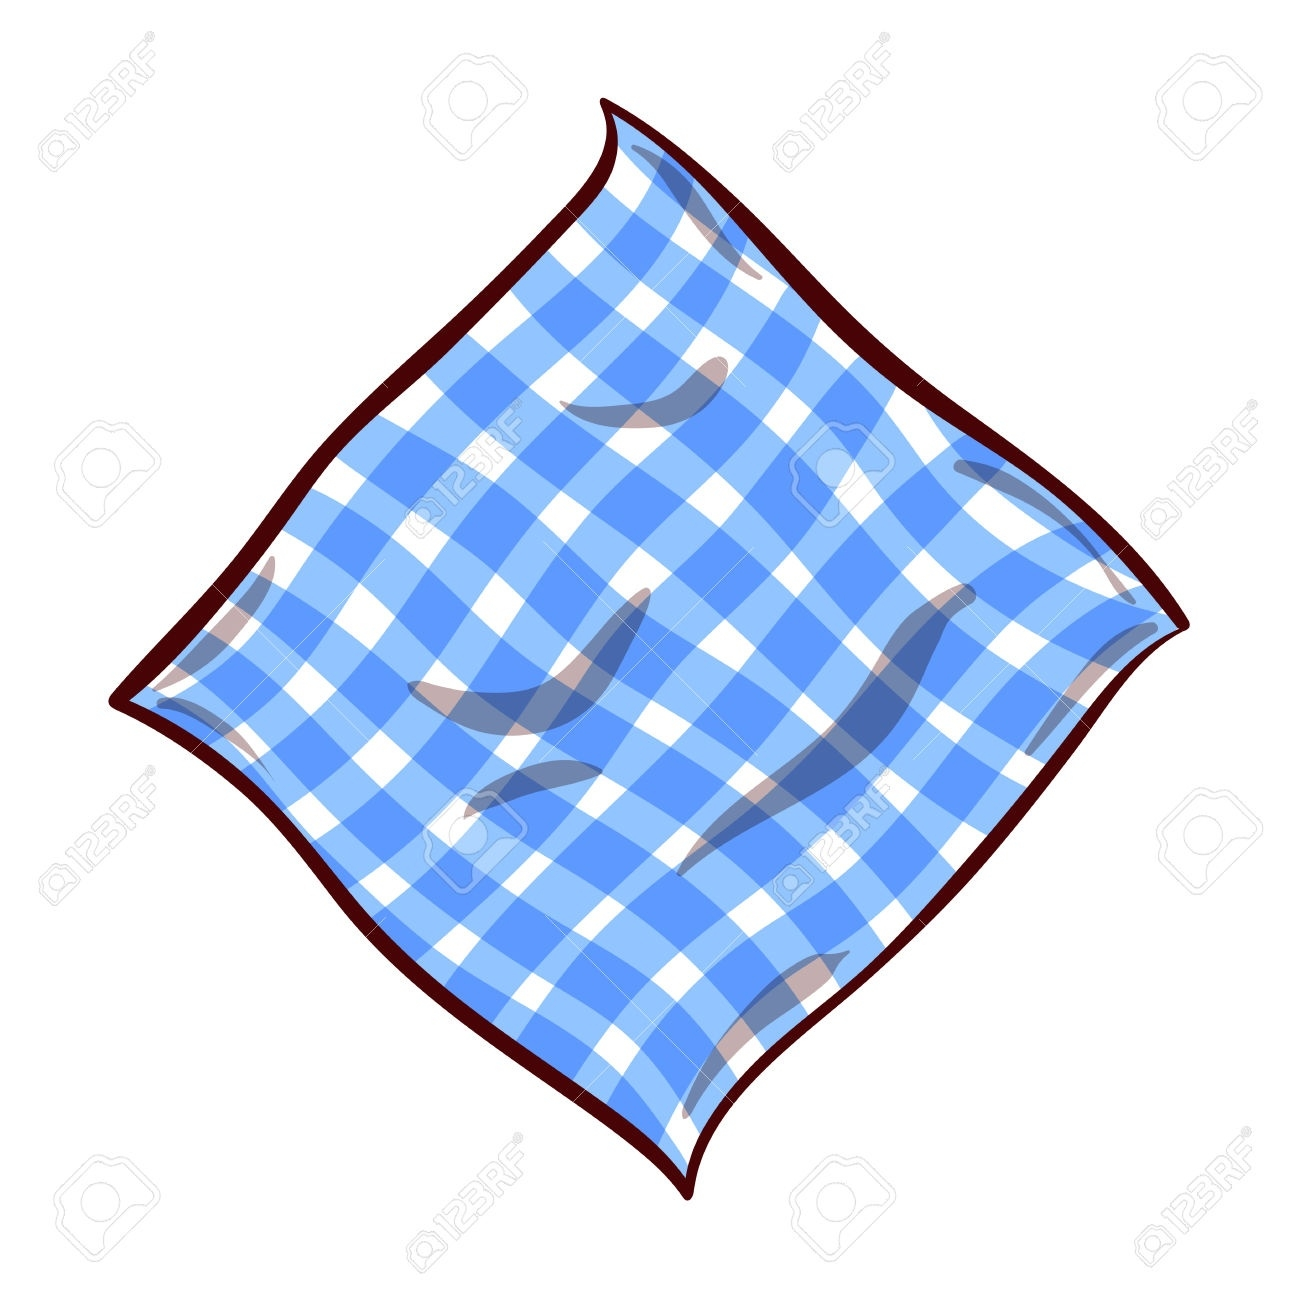 image freeuse download Clipground throughout . Napkin clipart